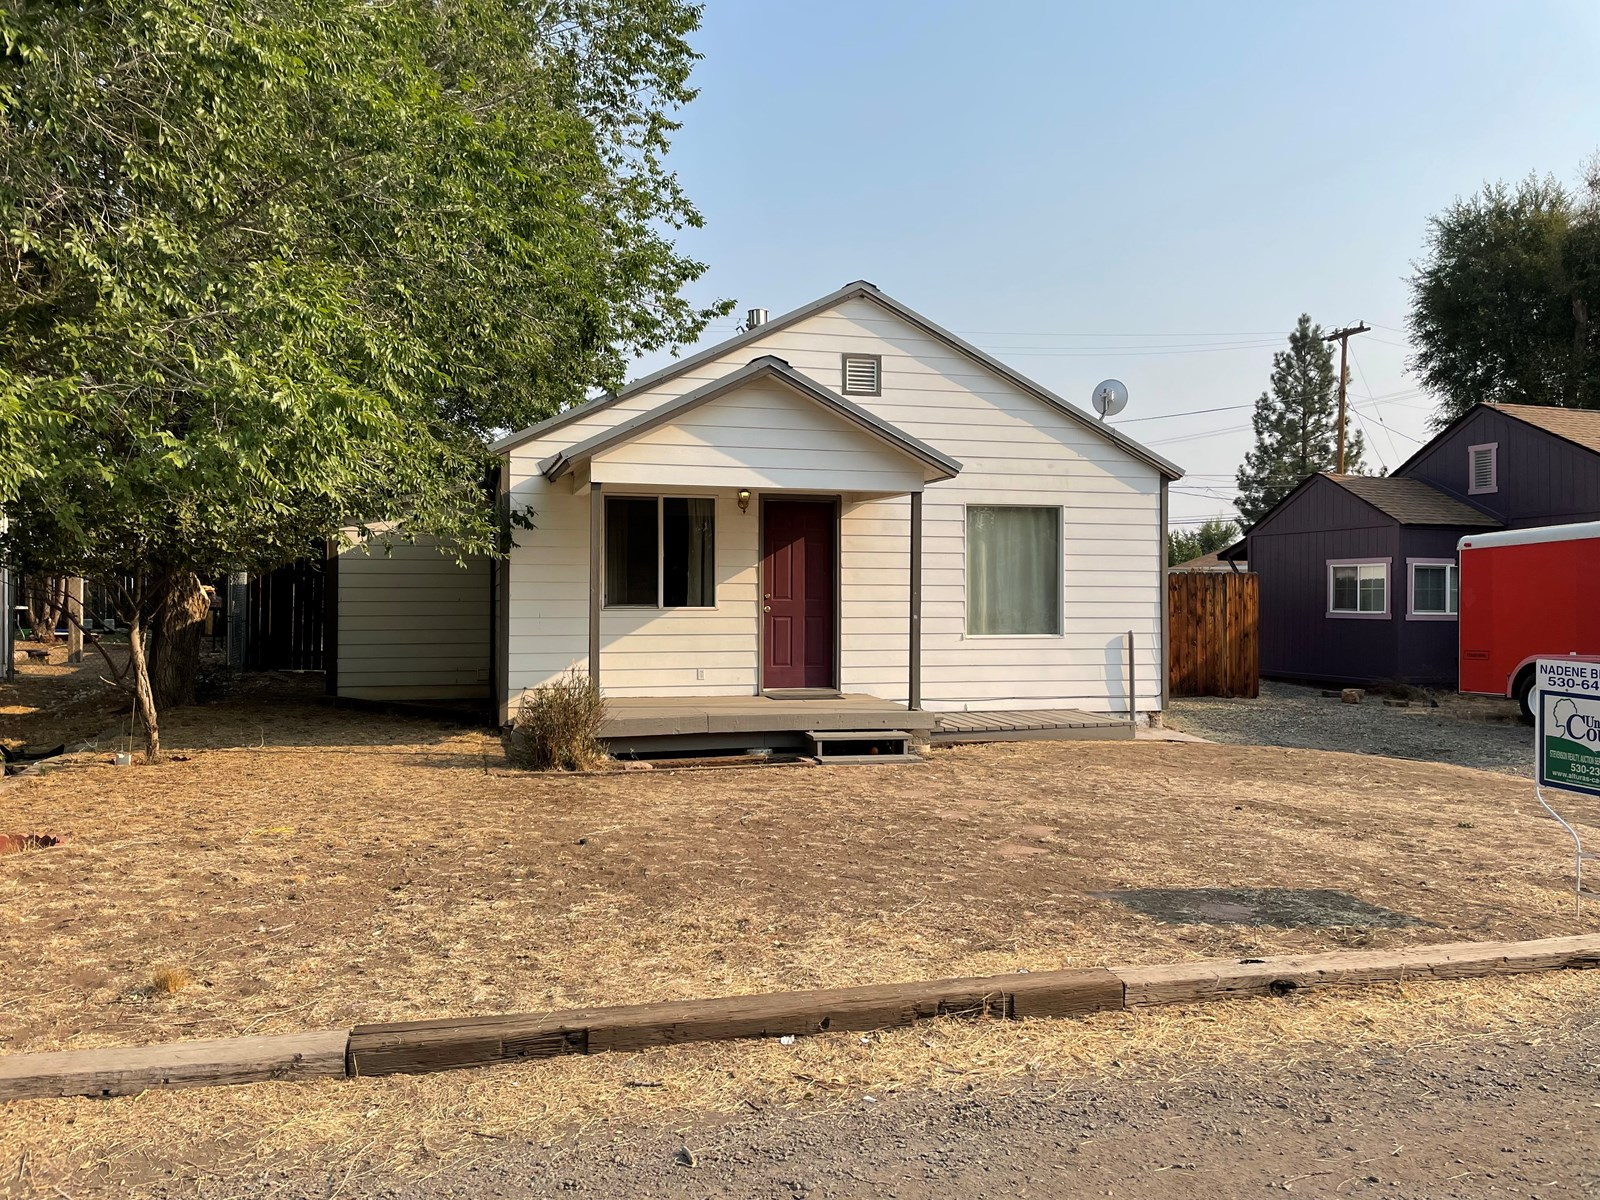 2 bed/1 bath home with new upgrades